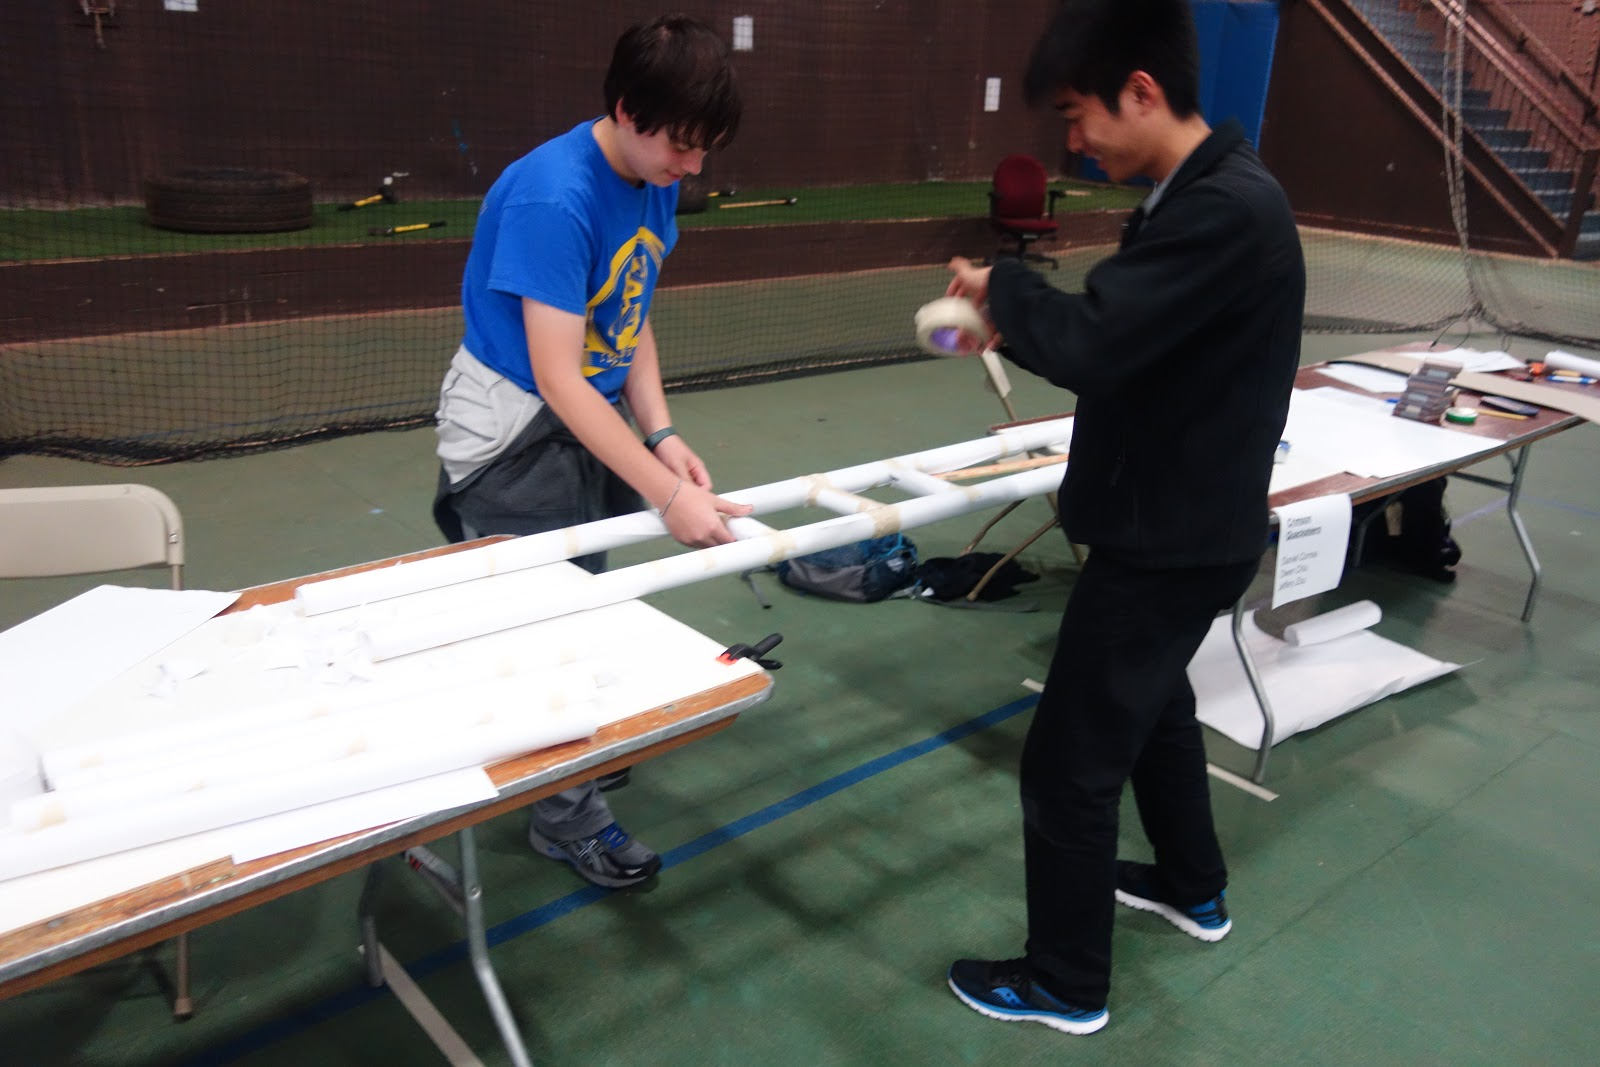 The Students Were Given Their Challenge To Design And Build A Four Foot Span Paper Bridge Teams Worked Intensely Designing Building Testing